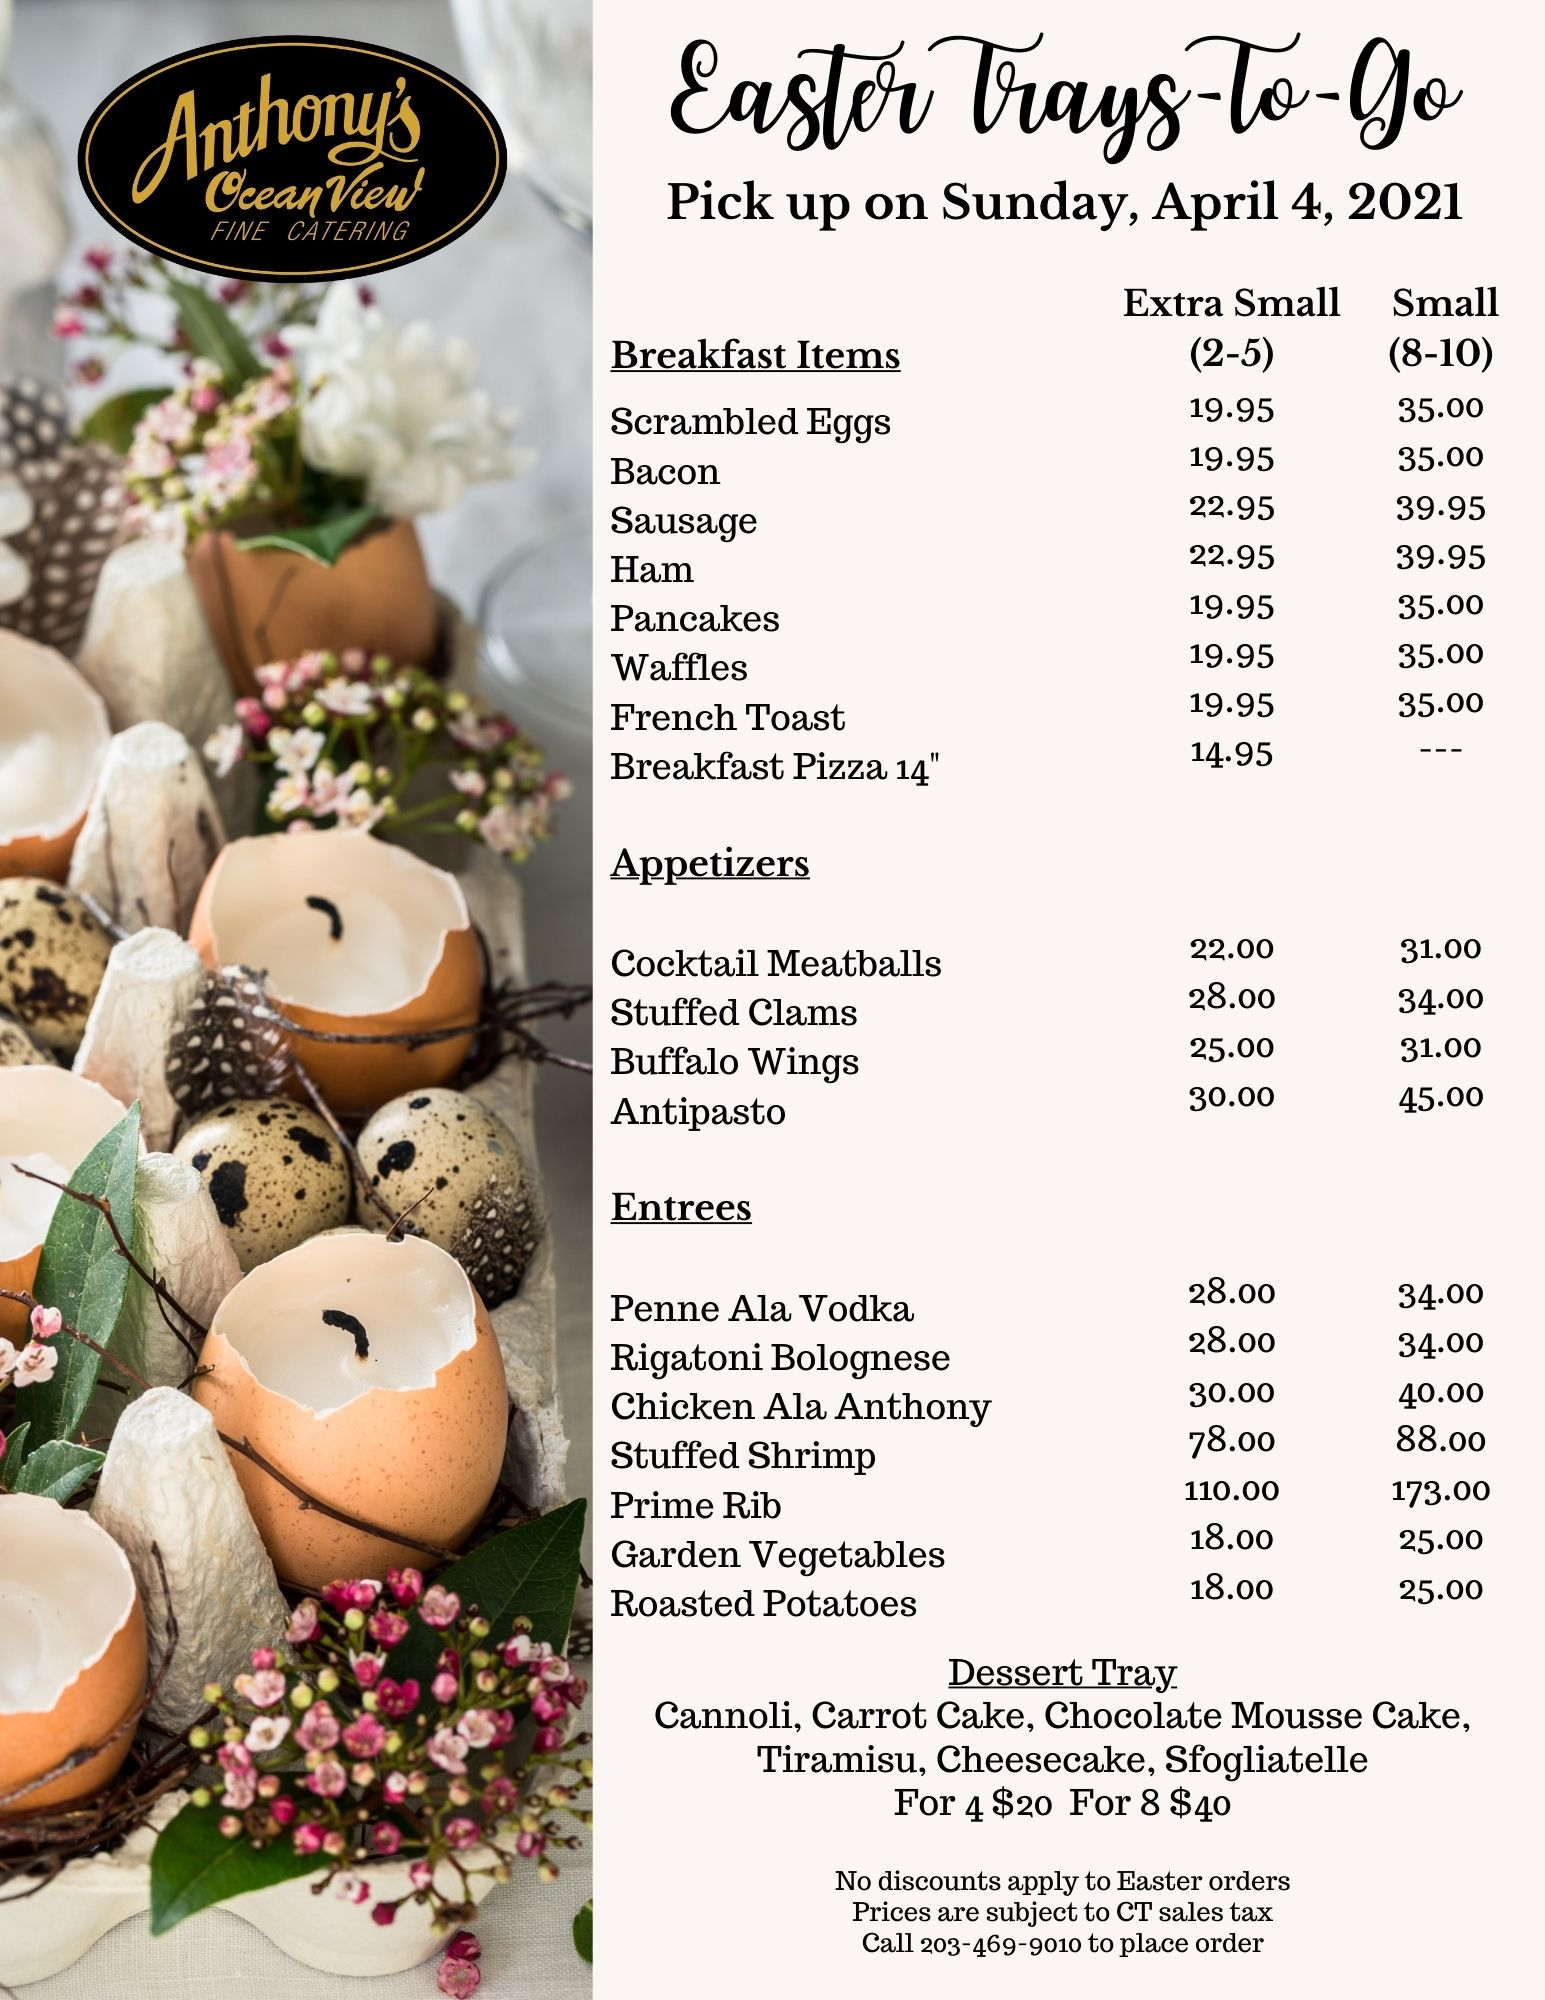 Easter Dining, Easter Dinner, Easter Event, Easter Catering, Easter Trays to go